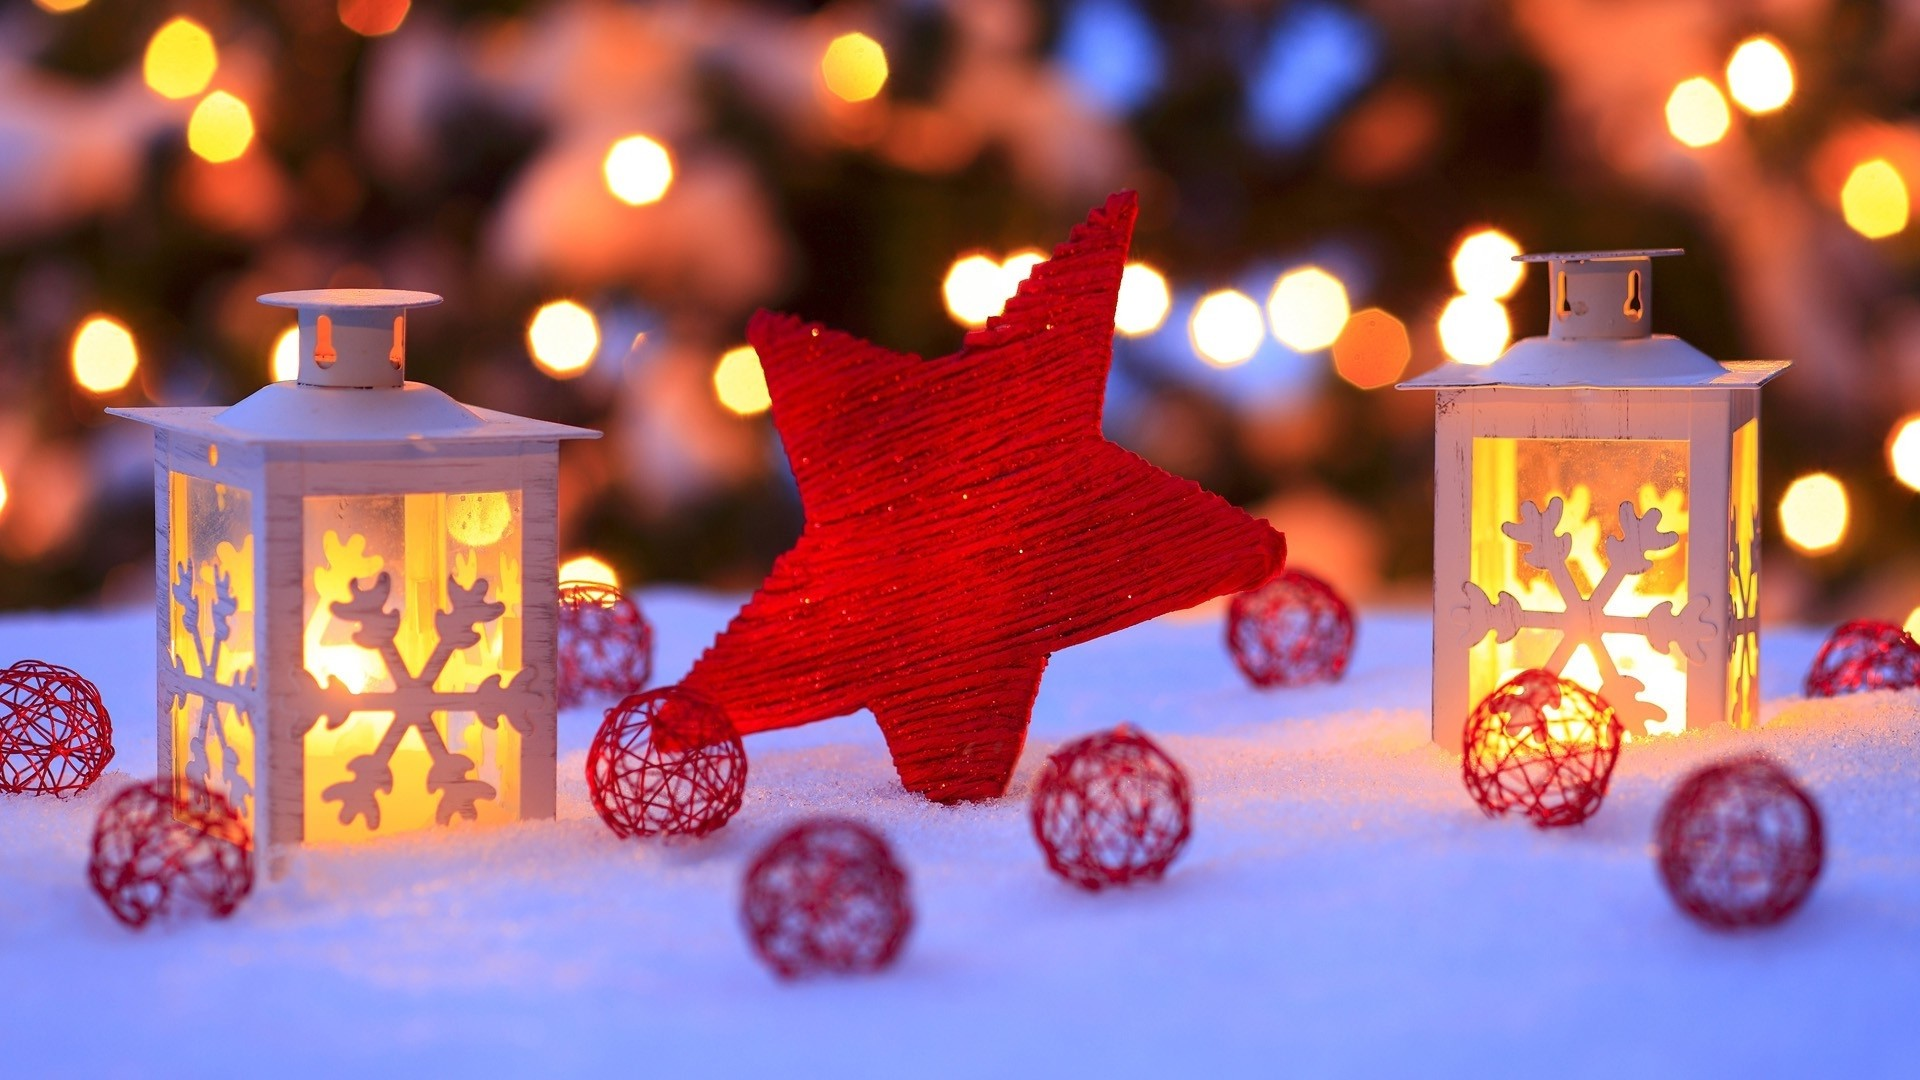 High Definition Pictures: HD Christmas Wallpapers Desktop 1920×1080